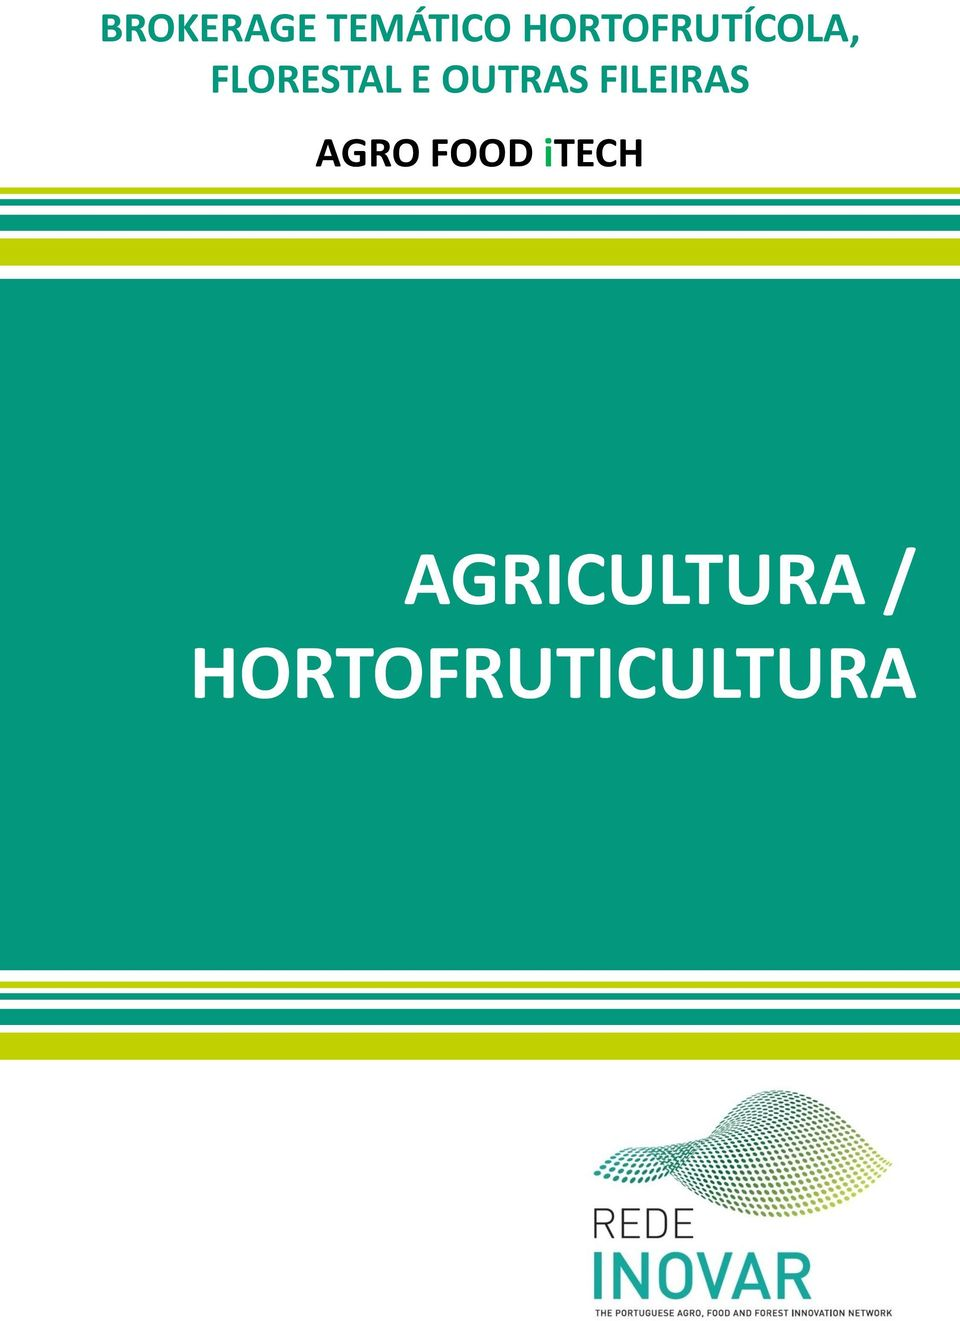 OUTRAS FILEIRAS AGRO FOOD